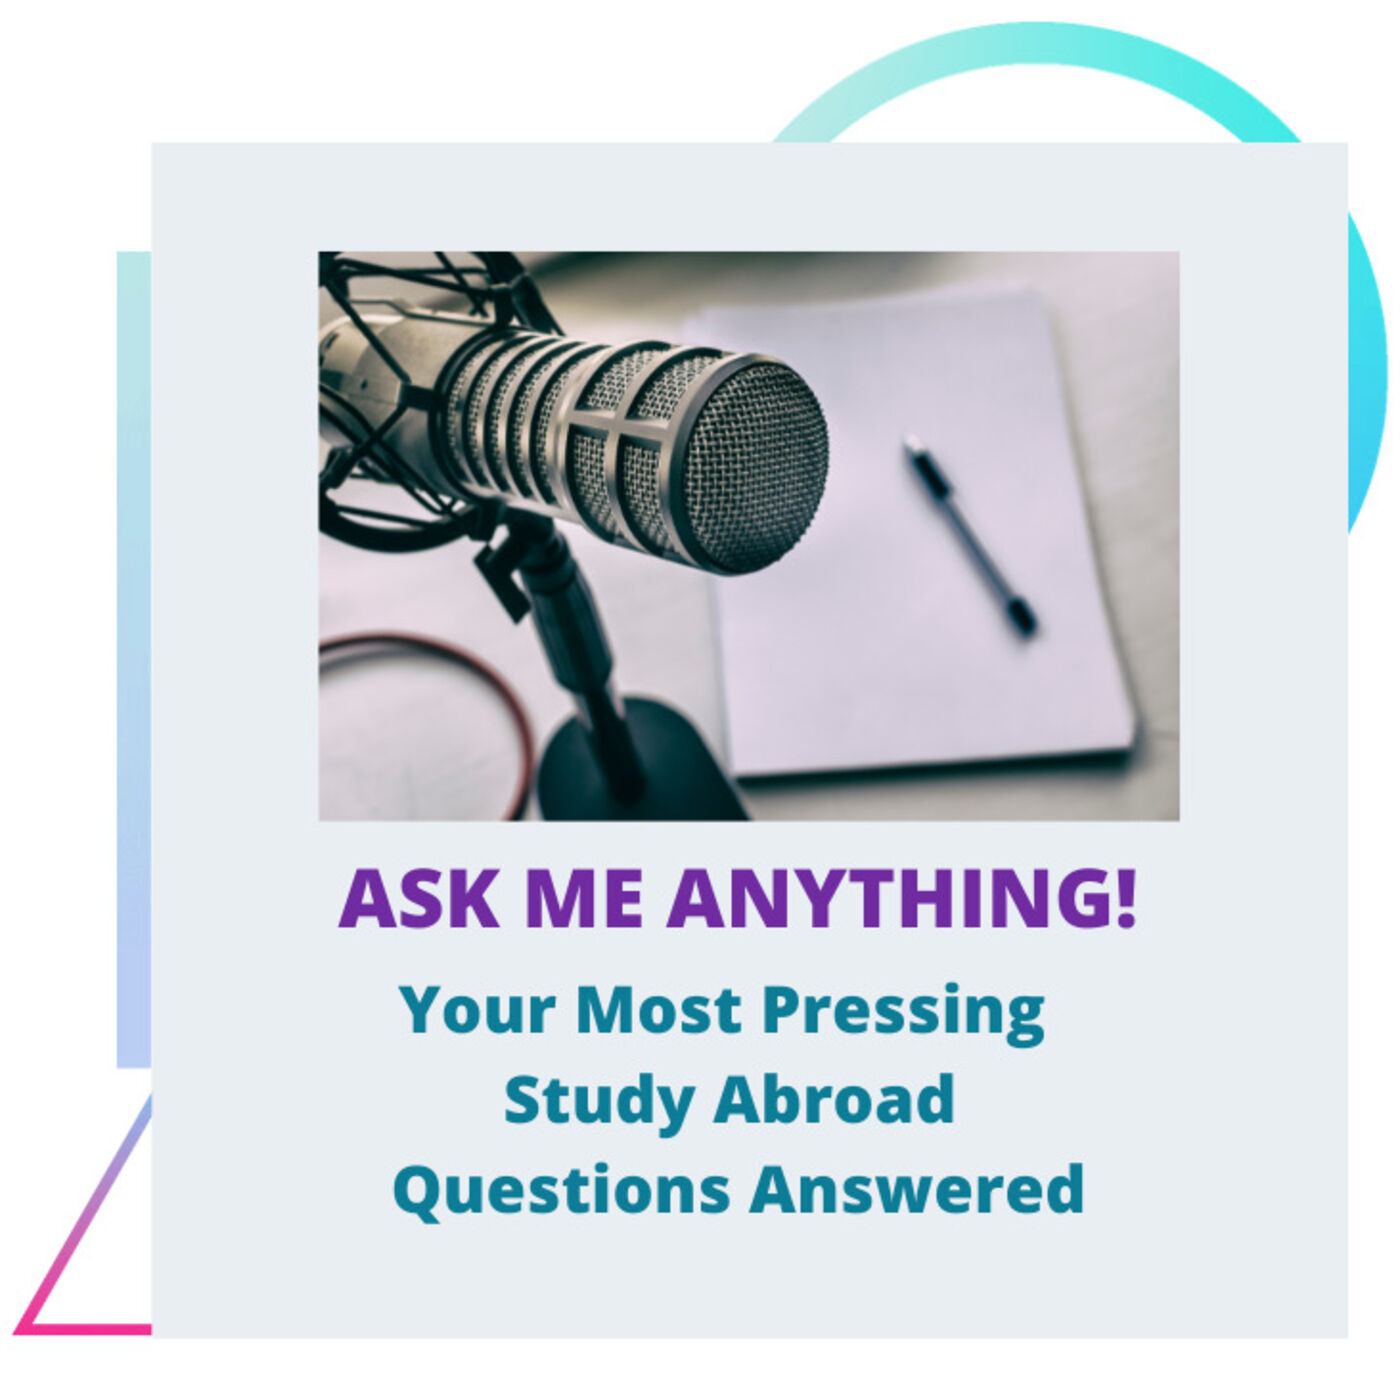 Season 2 - #8: Ask Me Anything! Your Study Abroad Questions Answered